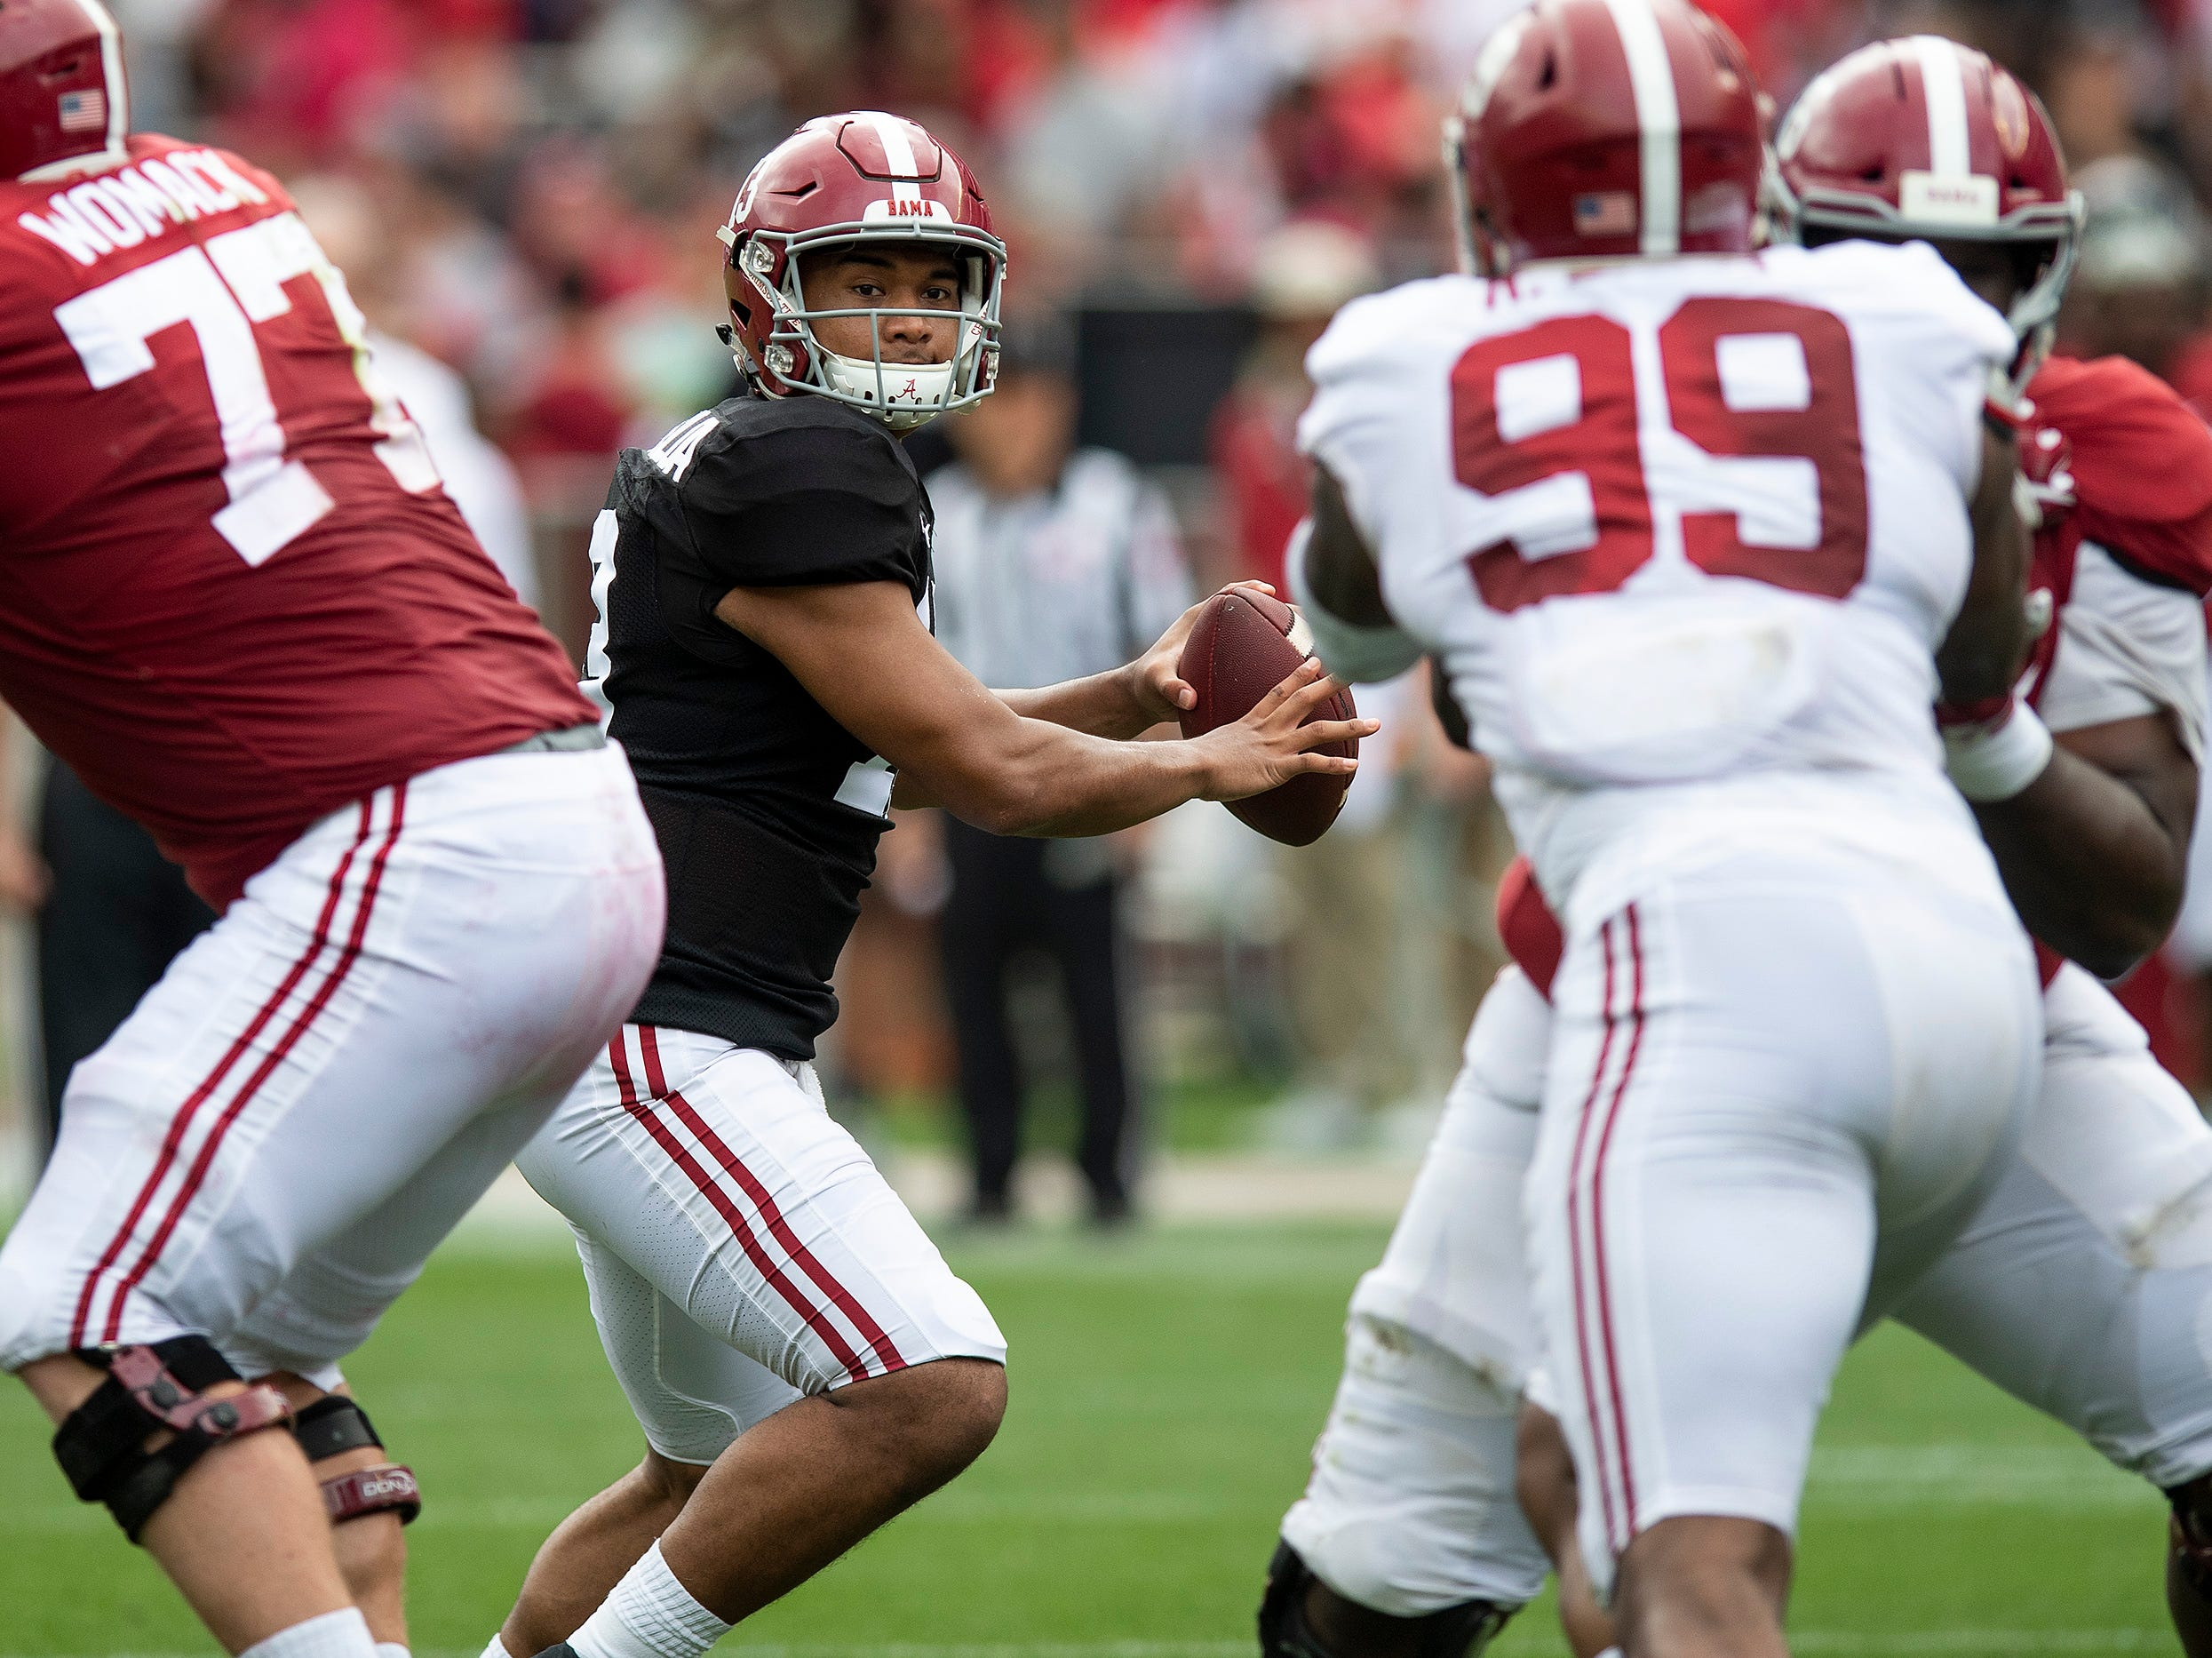 Alabama quarterback Tua Tagovailoa (13) passes during first half action in the Alabama A-Day spring football scrimmage game at Bryant Denny Stadium in Tuscaloosa, Ala., on Saturday April 13, 2019.